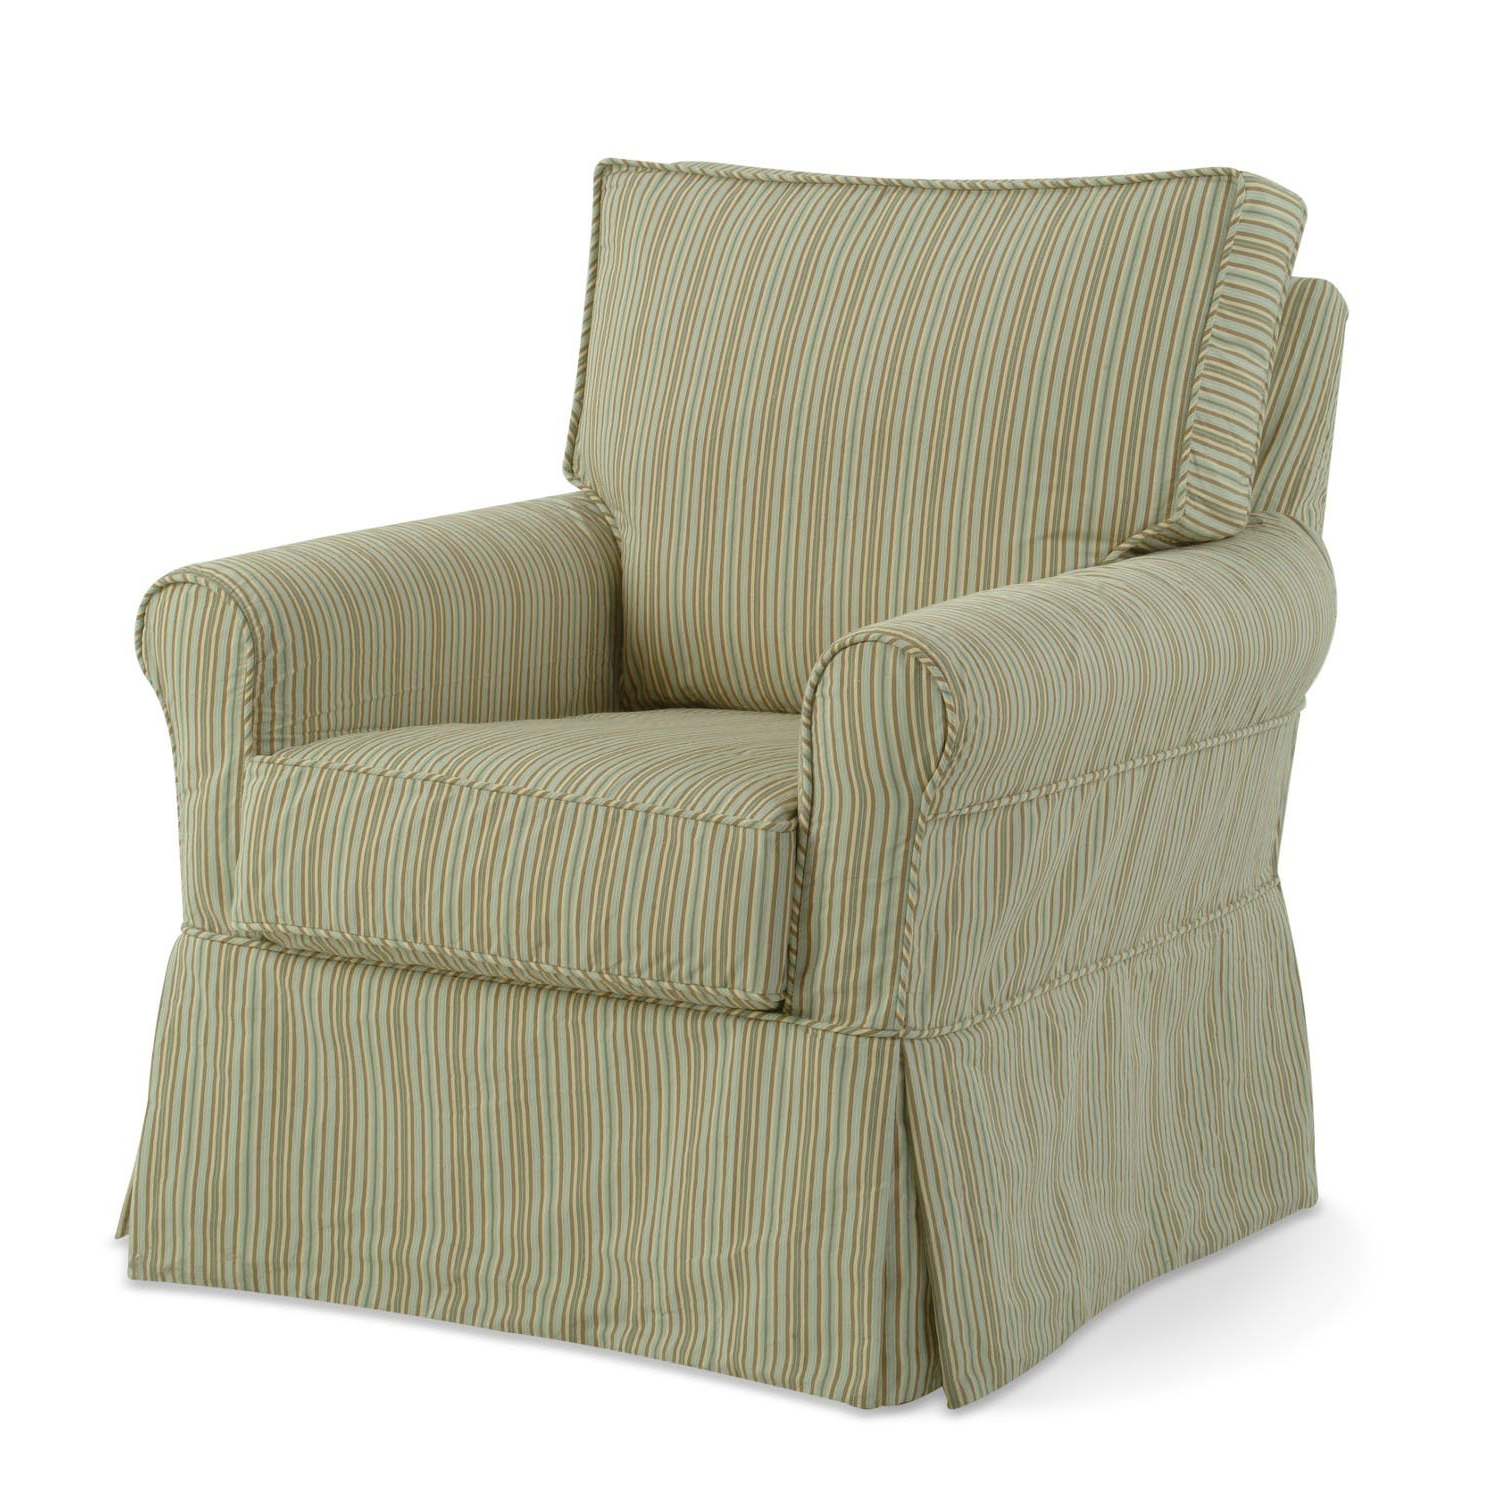 American Country Throughout Latest Loft Smokey Swivel Accent Chairs (Gallery 2 of 20)